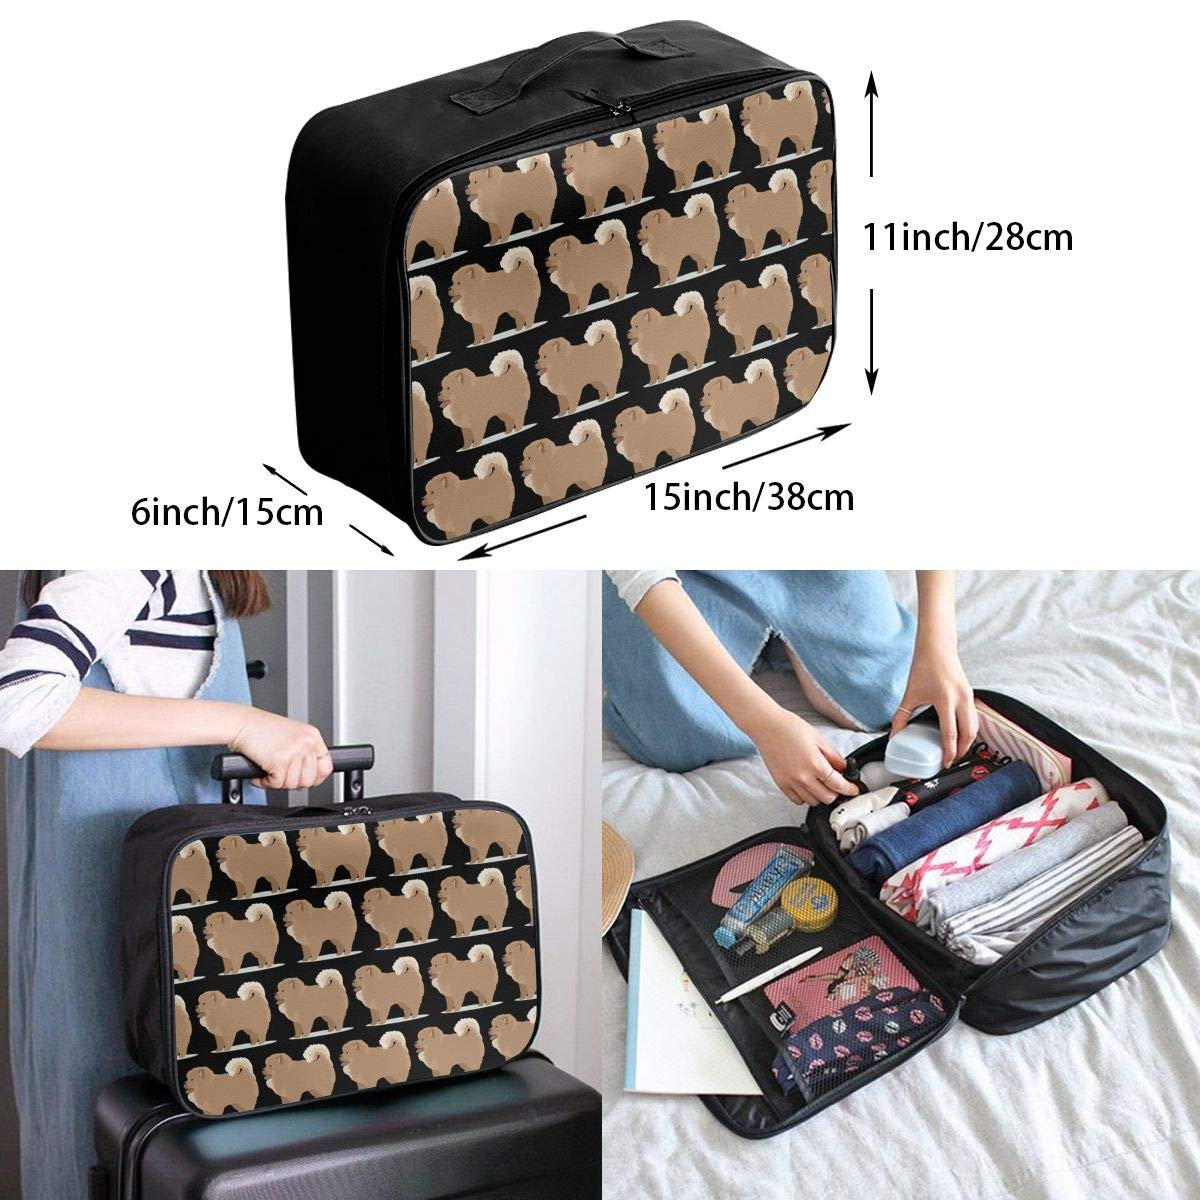 YueLJB Chow Chow Dog Lightweight Large Capacity Portable Luggage Bag Travel Duffel Bag Storage Carry Luggage Duffle Tote Bag